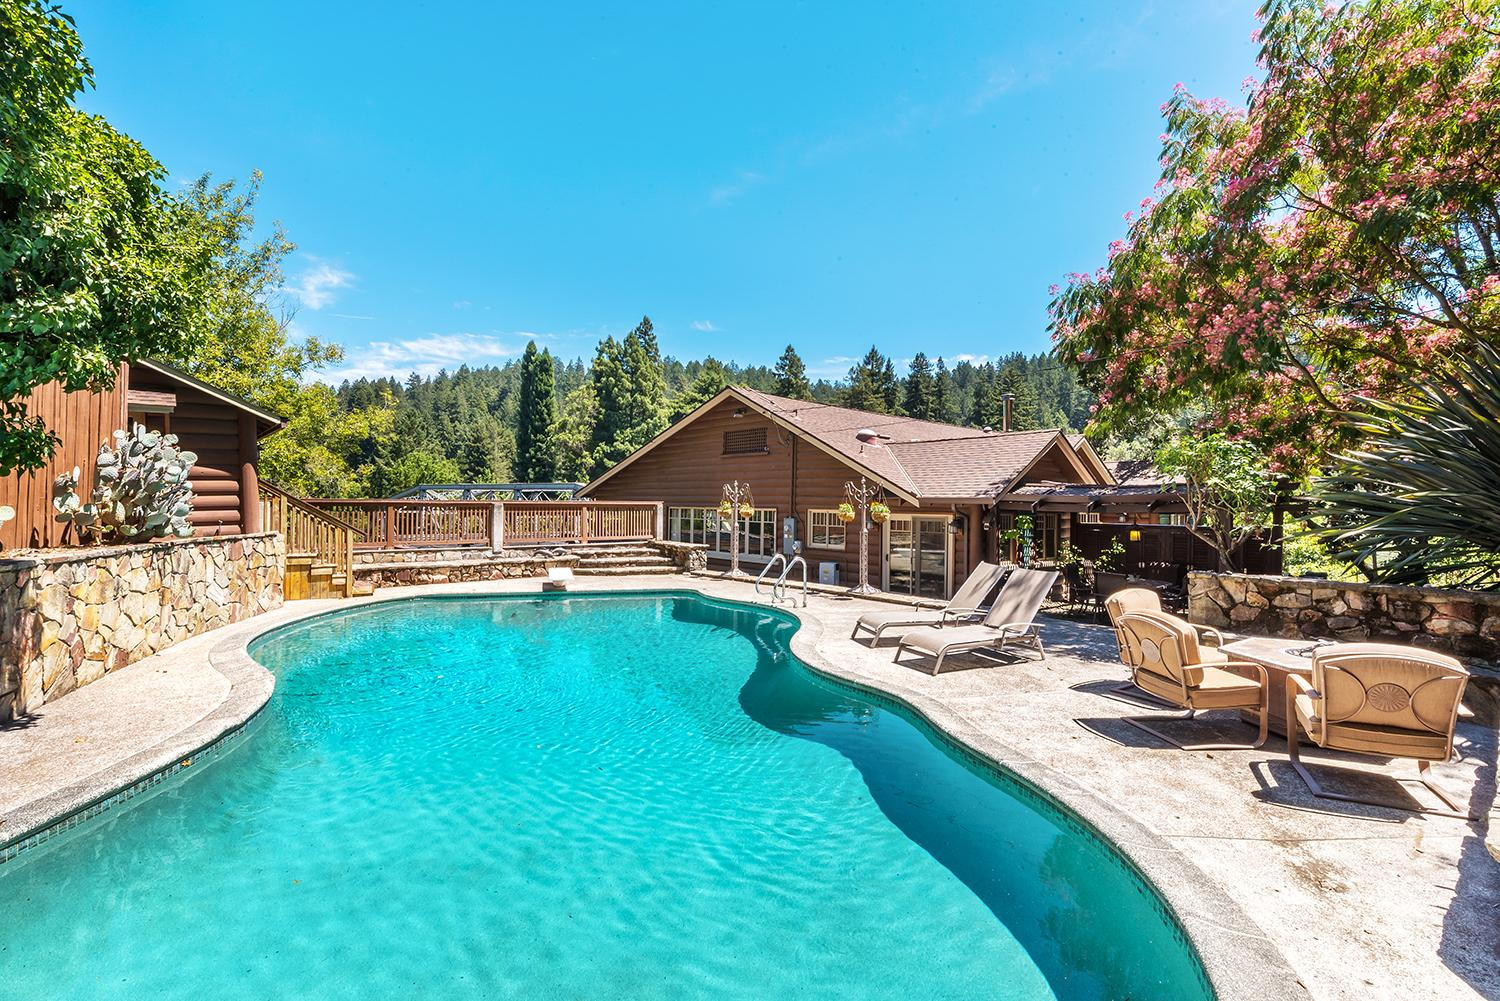 Property Image 1 - Luxury Lodge Along the Banks of the Russian River